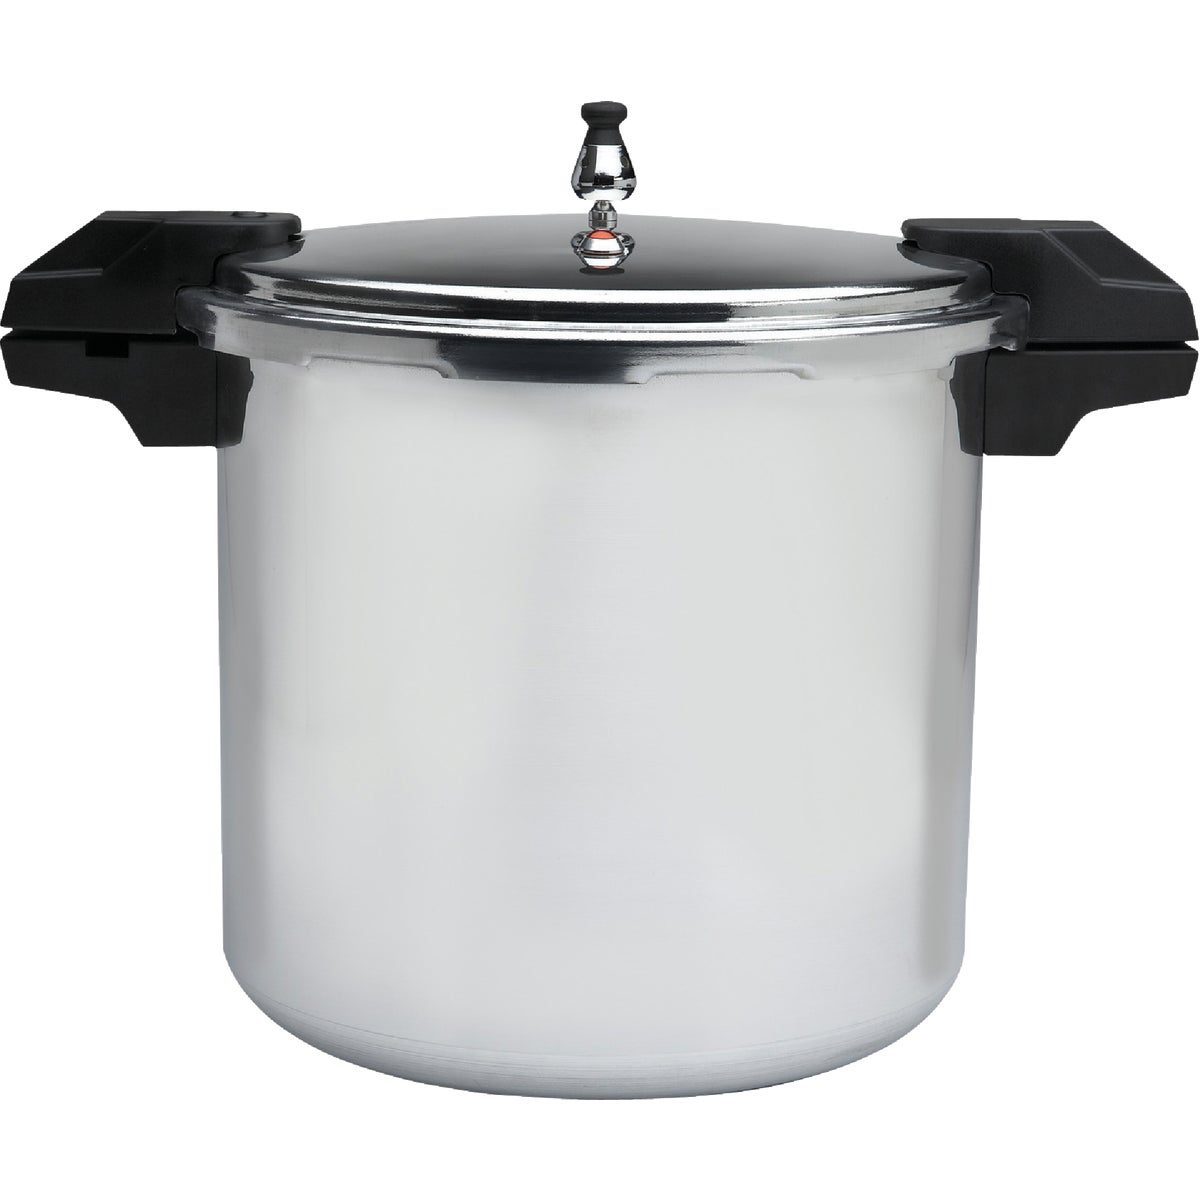 22QT PRESSURE COOKER - 92122A by T Fal Wearever